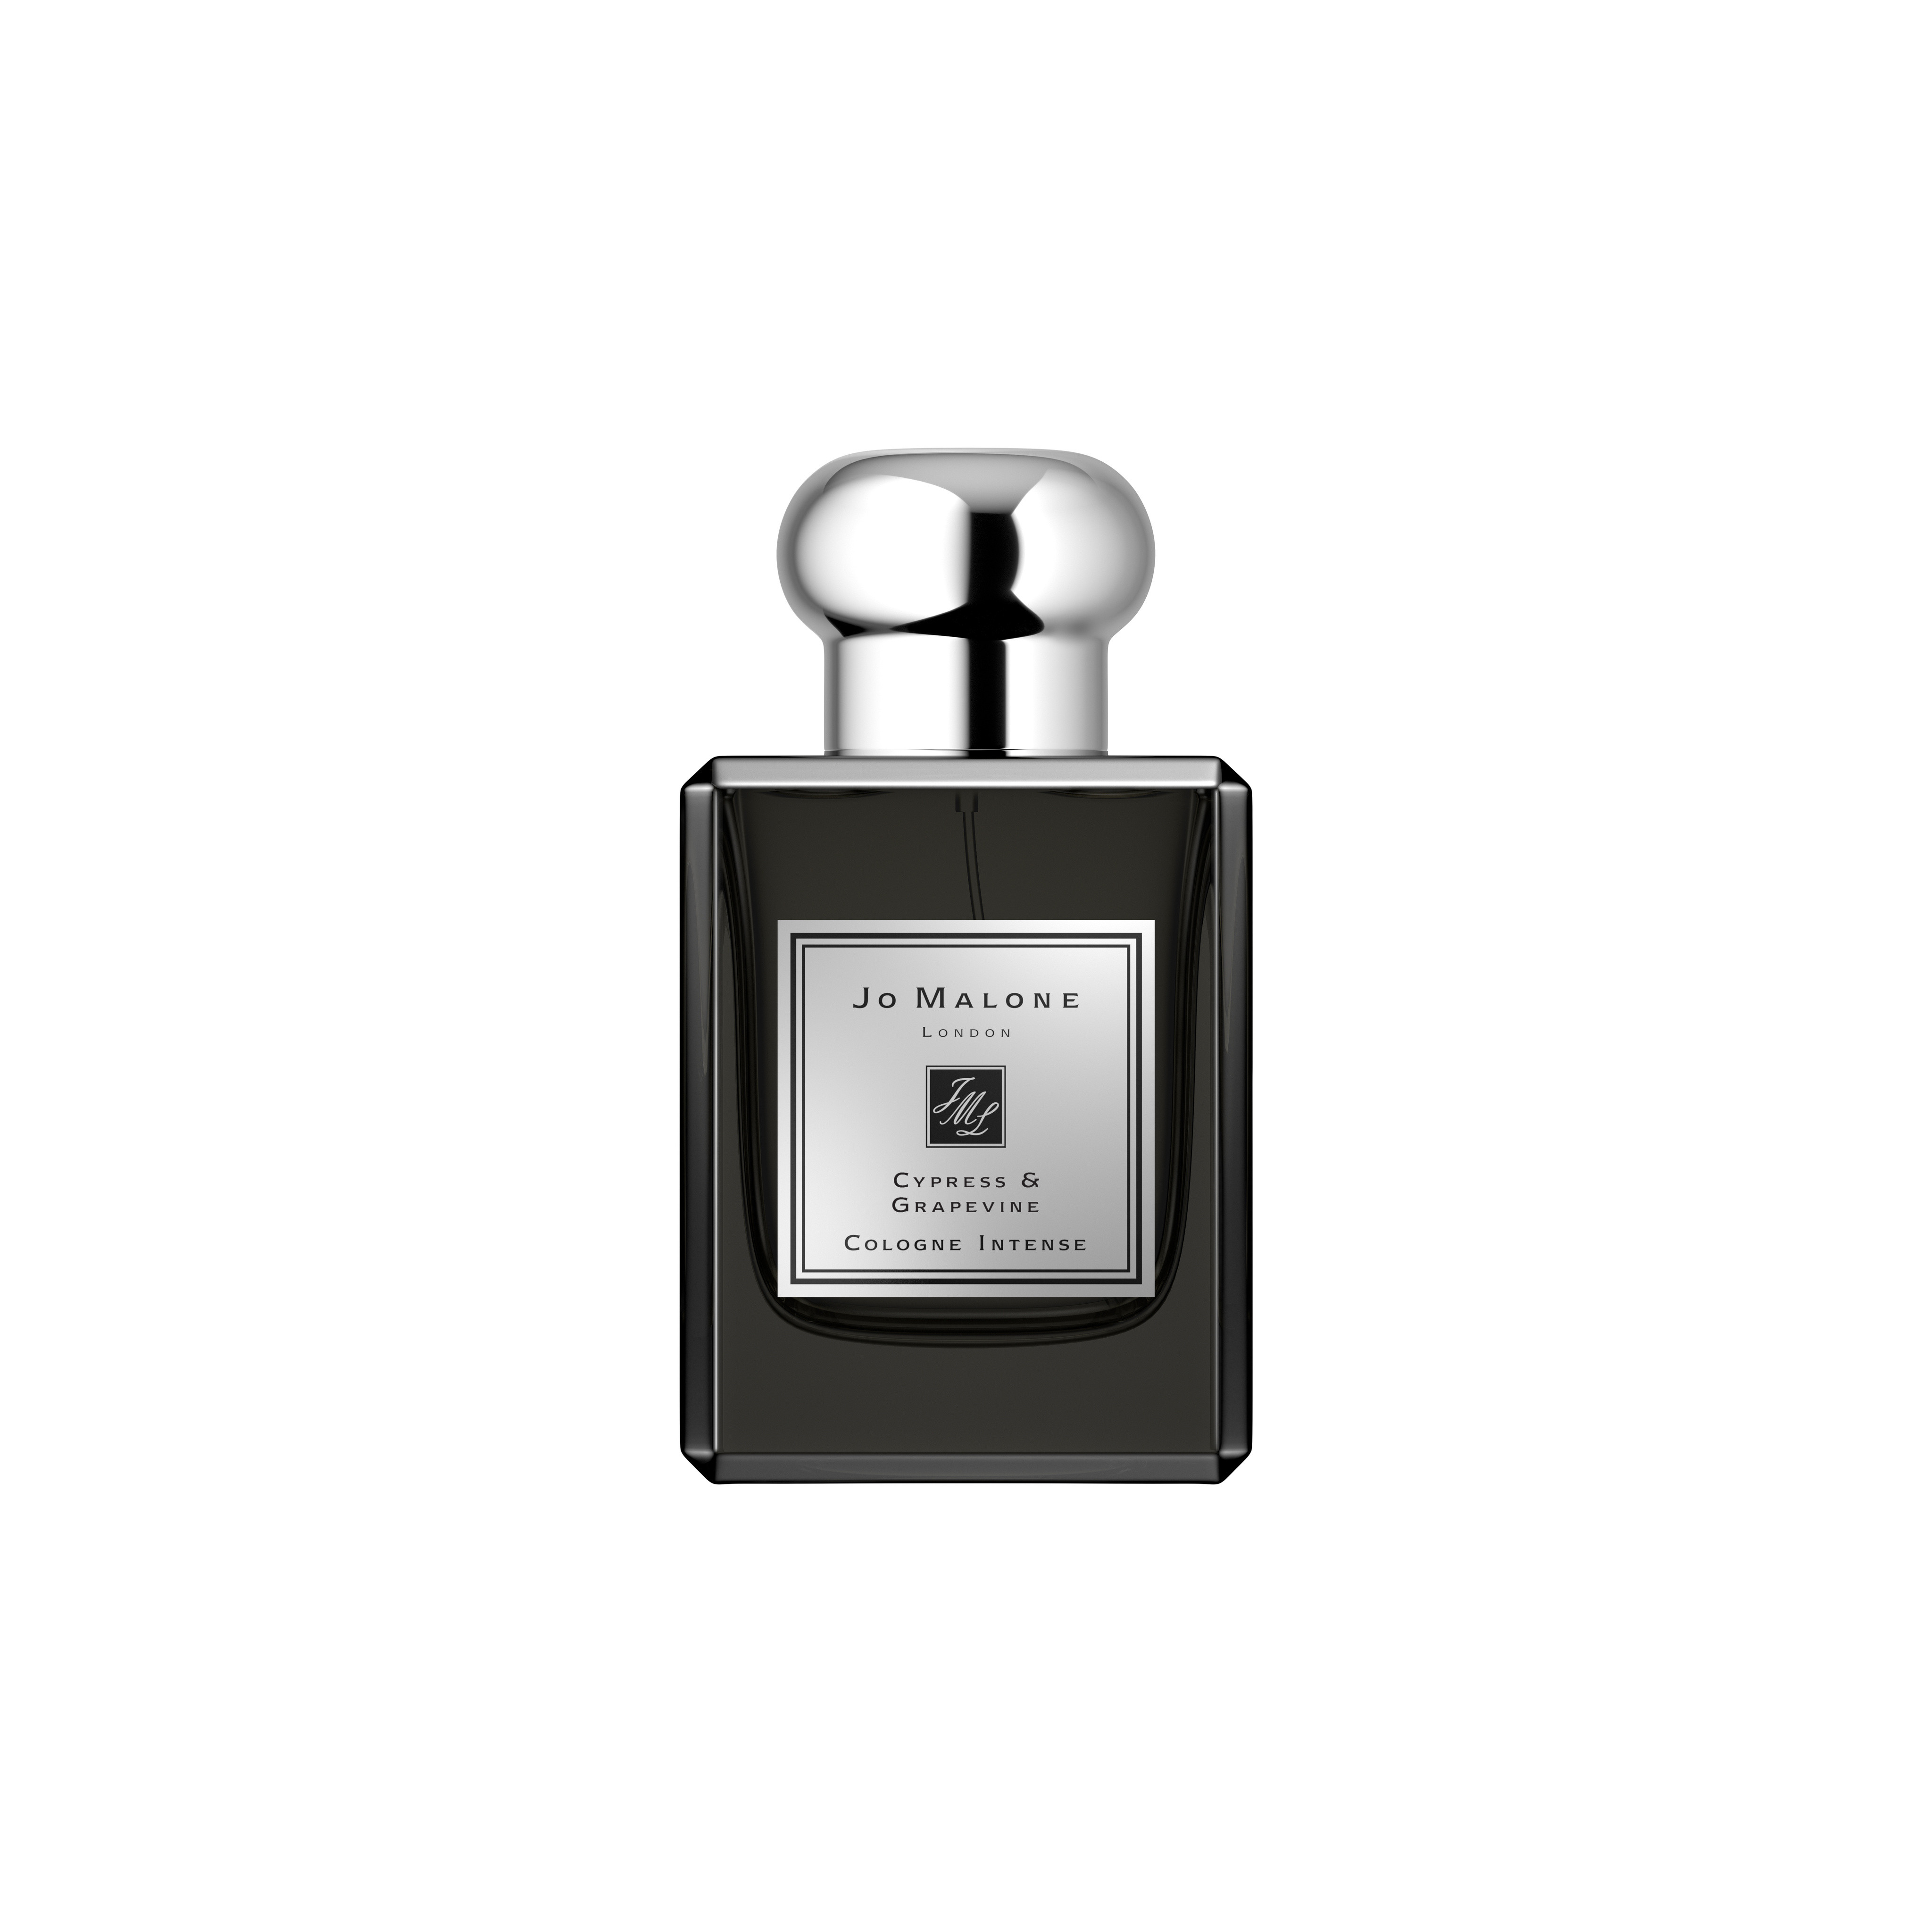 Jo Malone London cypress & grapevine cologne intense 50 ml, Beige, large image number 0